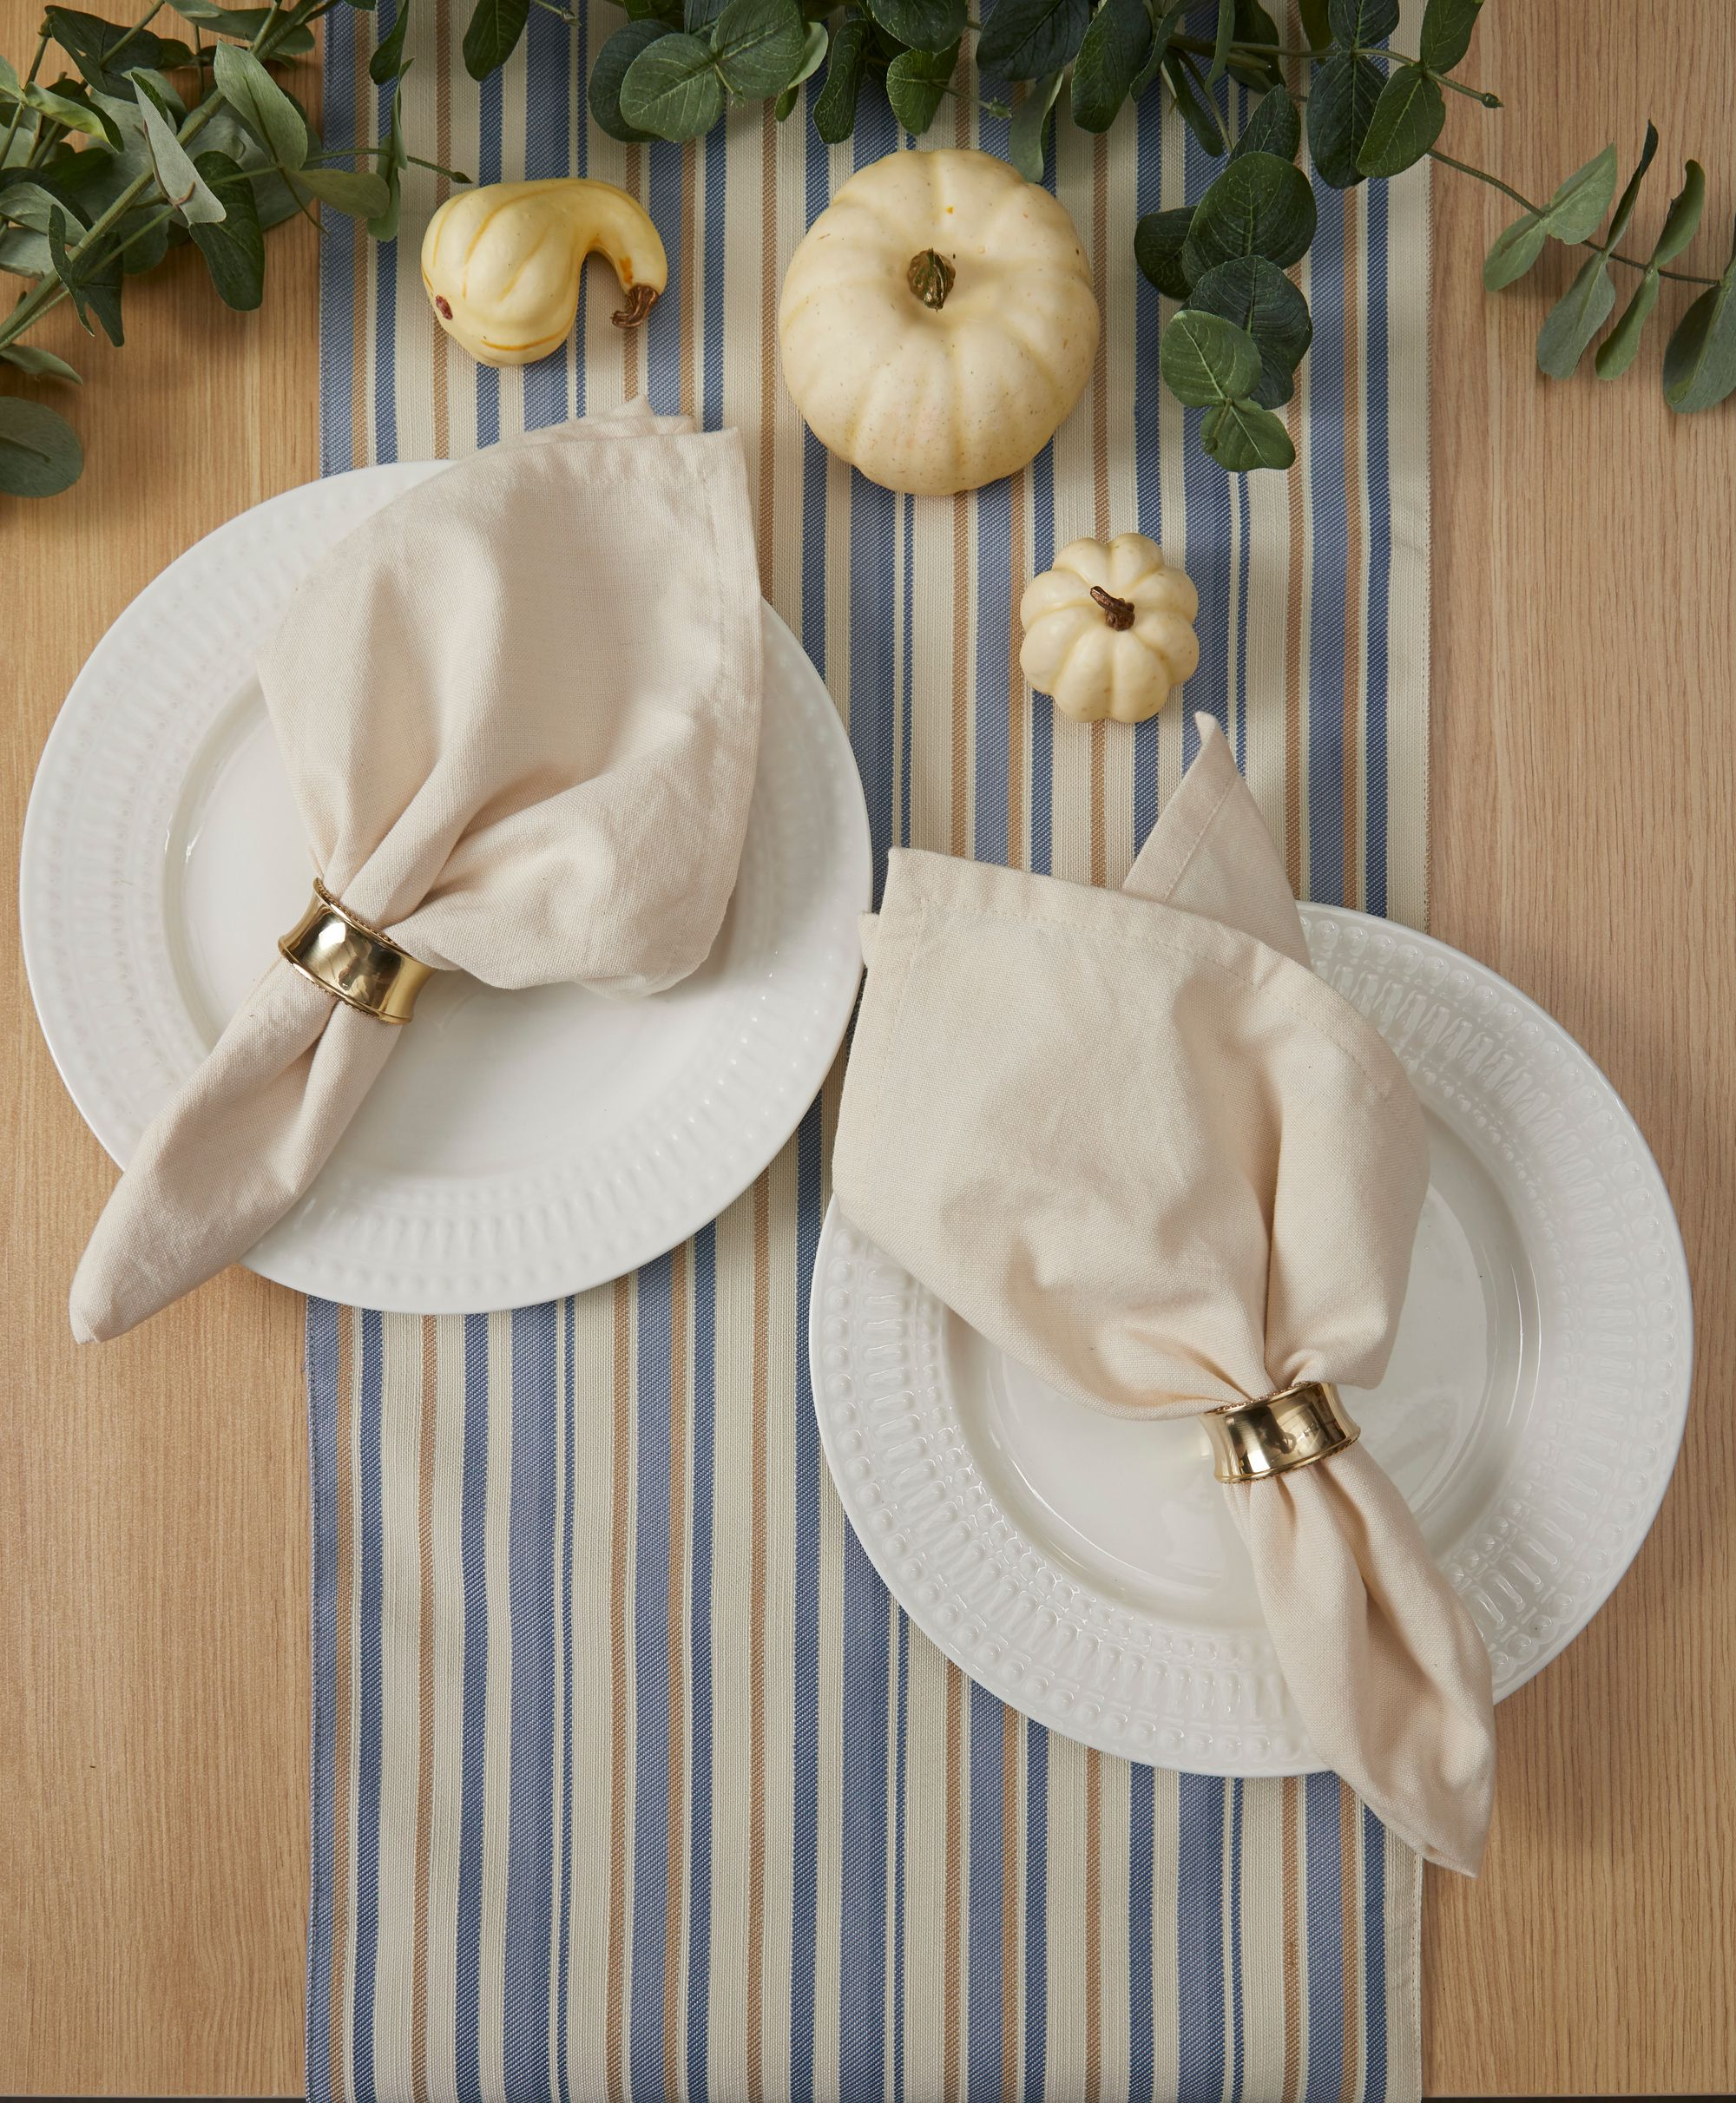 Are you tables ready for thanksgiving yet? Don't worry, we've got your back! Elegant Table runners, napkin rings, place mats and other tabletop products now available on the Croscill website! SHOP NOW #Croscill #CroscillTable #MyCroscill  . . . #Croscill #Croscilltable #tablerunners #placemats #napkinrings #thanksgivingtabledecor #tabledecor #falldecor #diningtabledecor